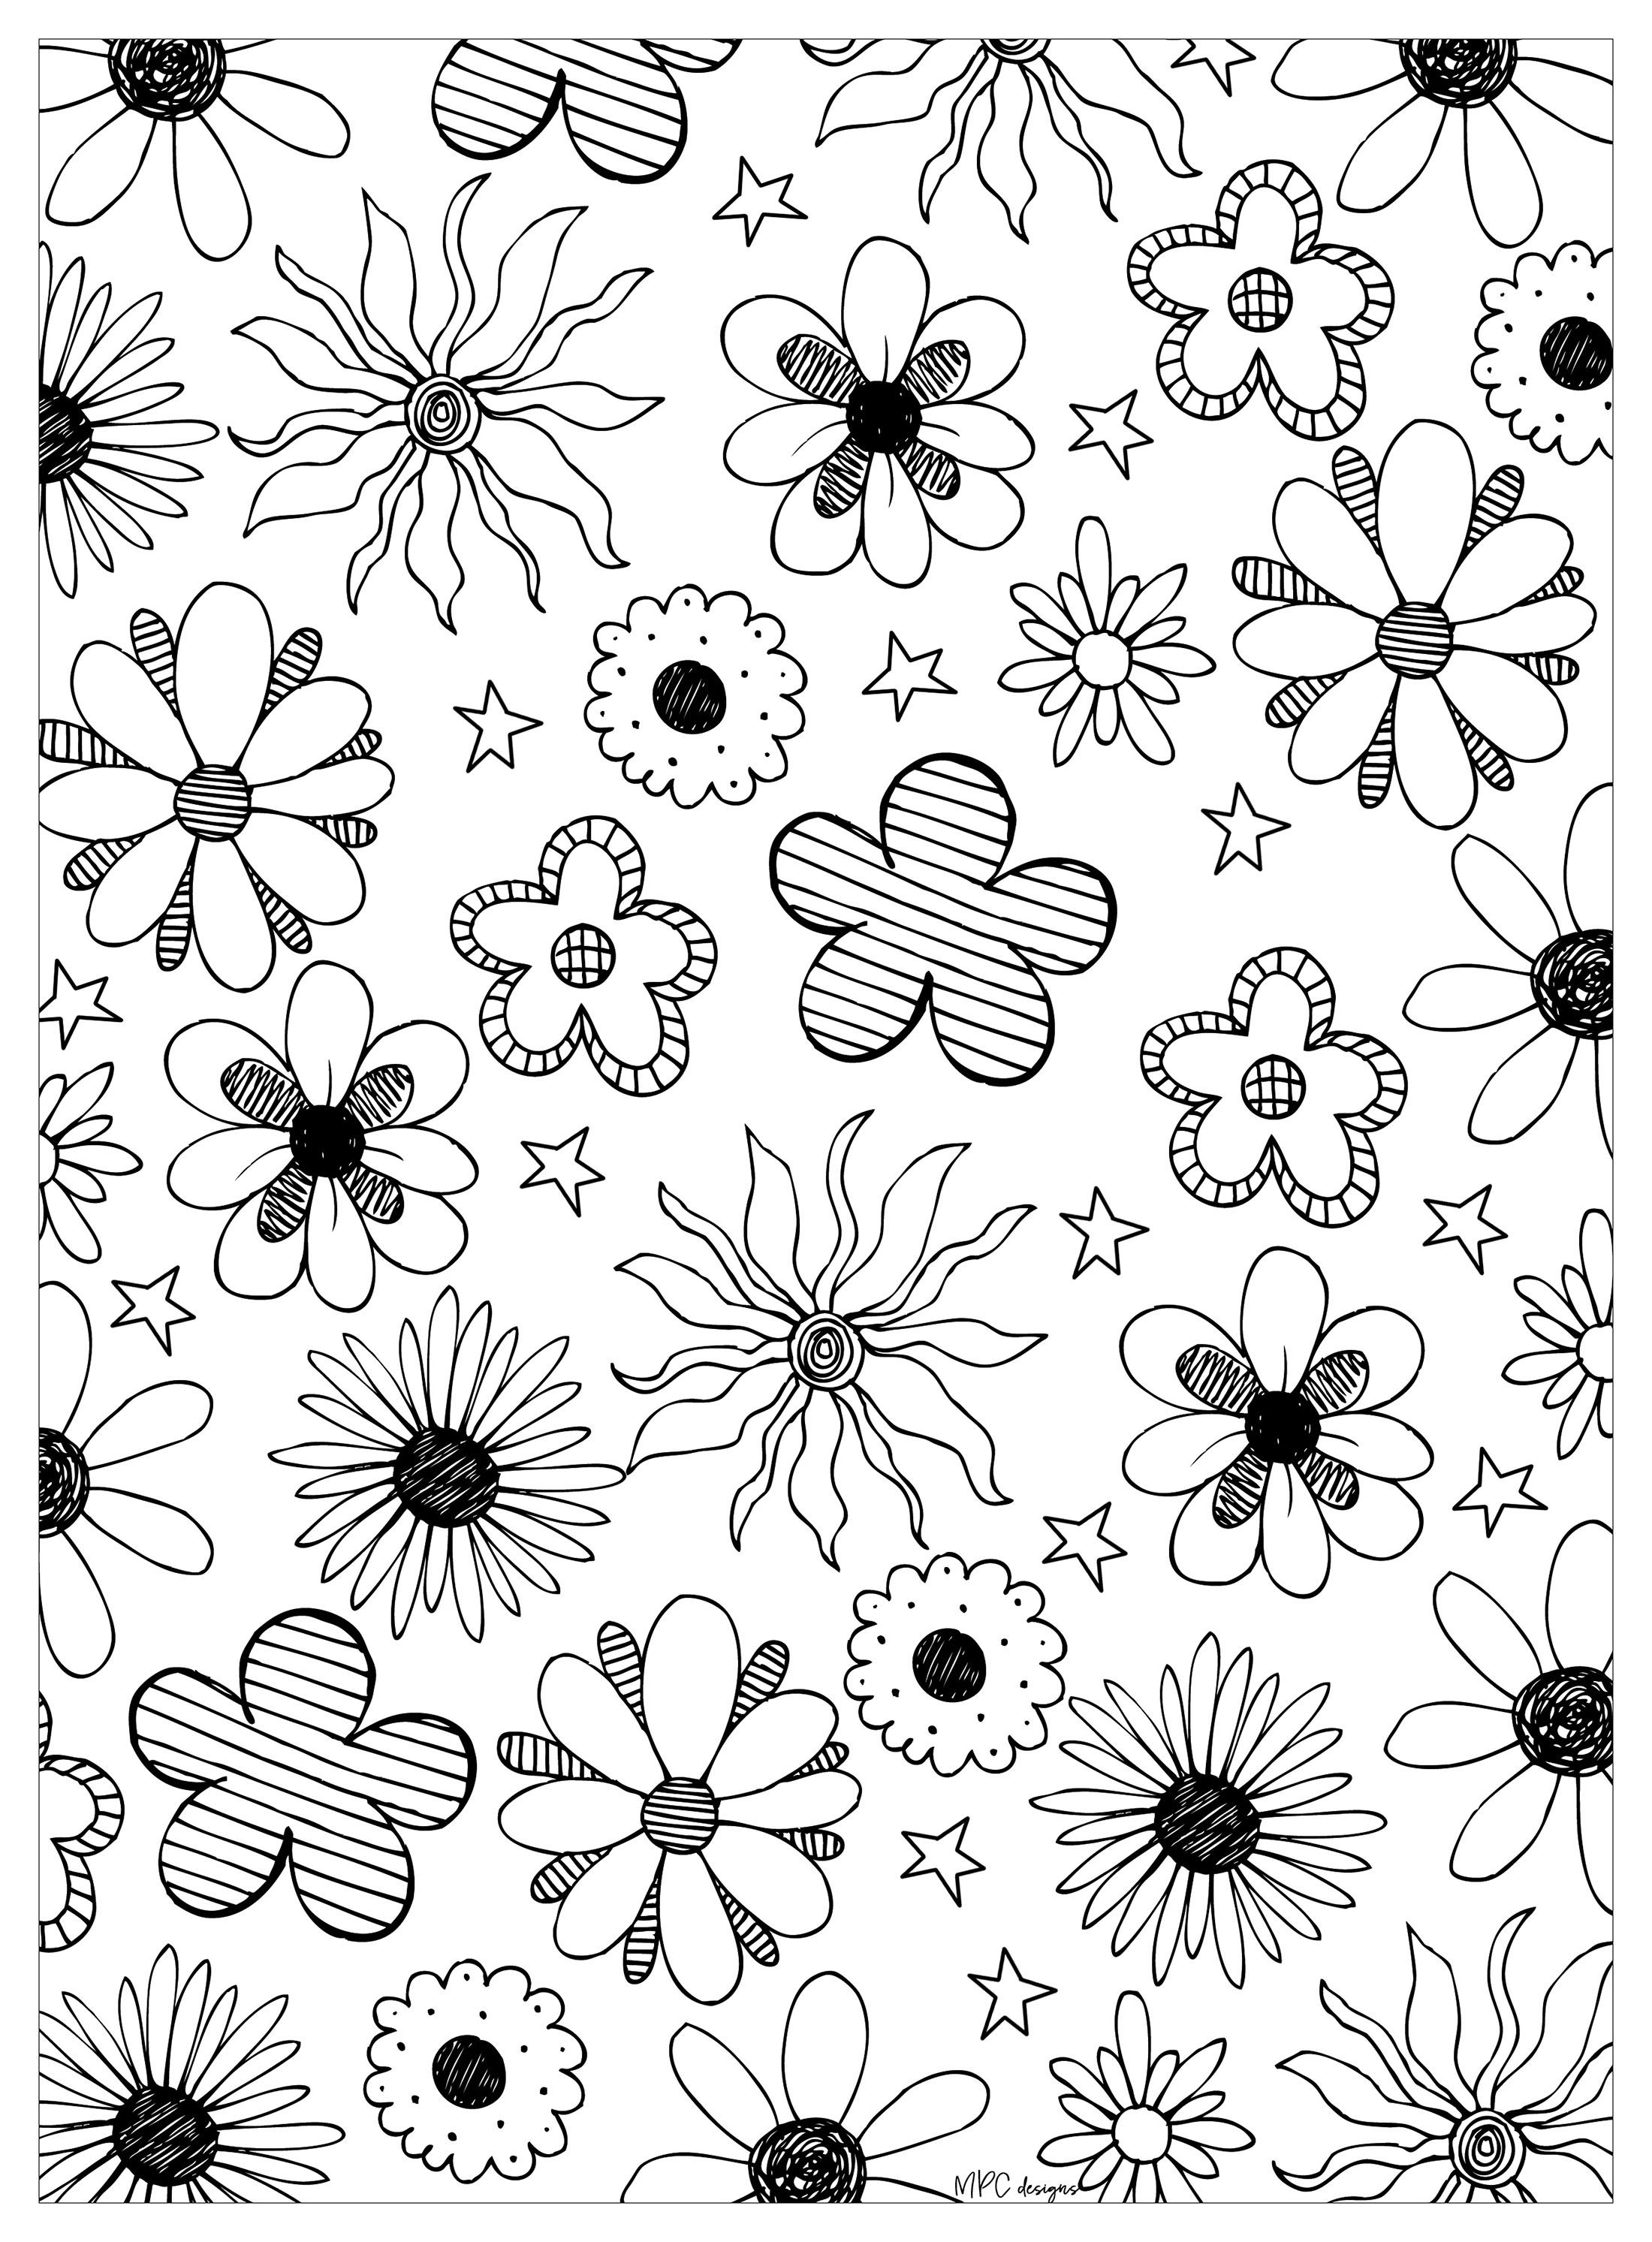 Here are Coloring pages inspired by the beauties of nature ...